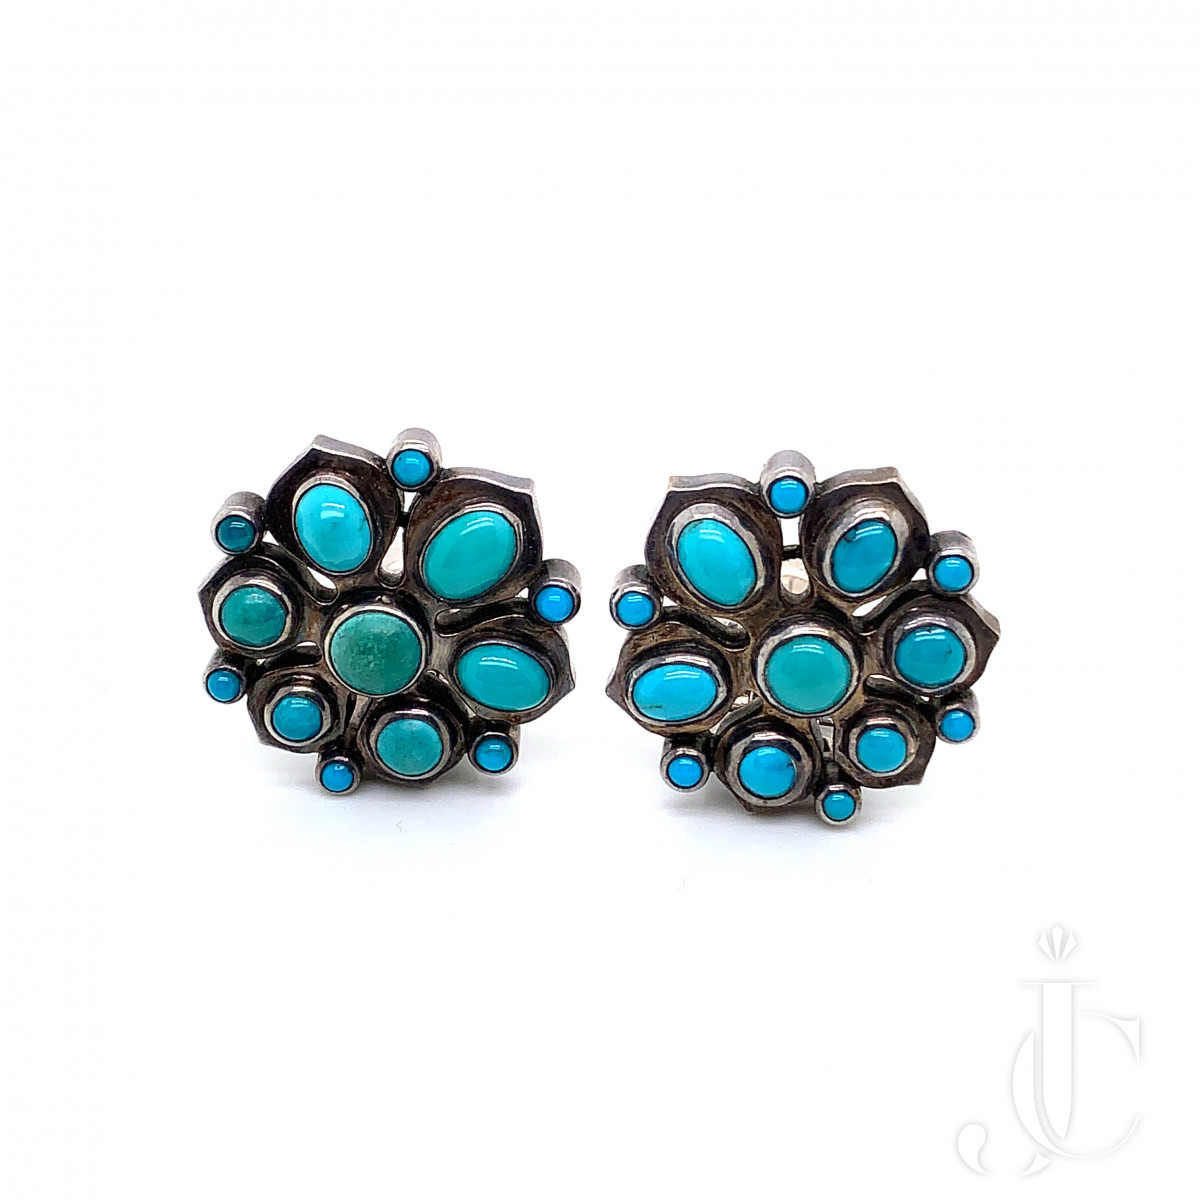 A pair of turquoise silver earrings by Rene Boivin